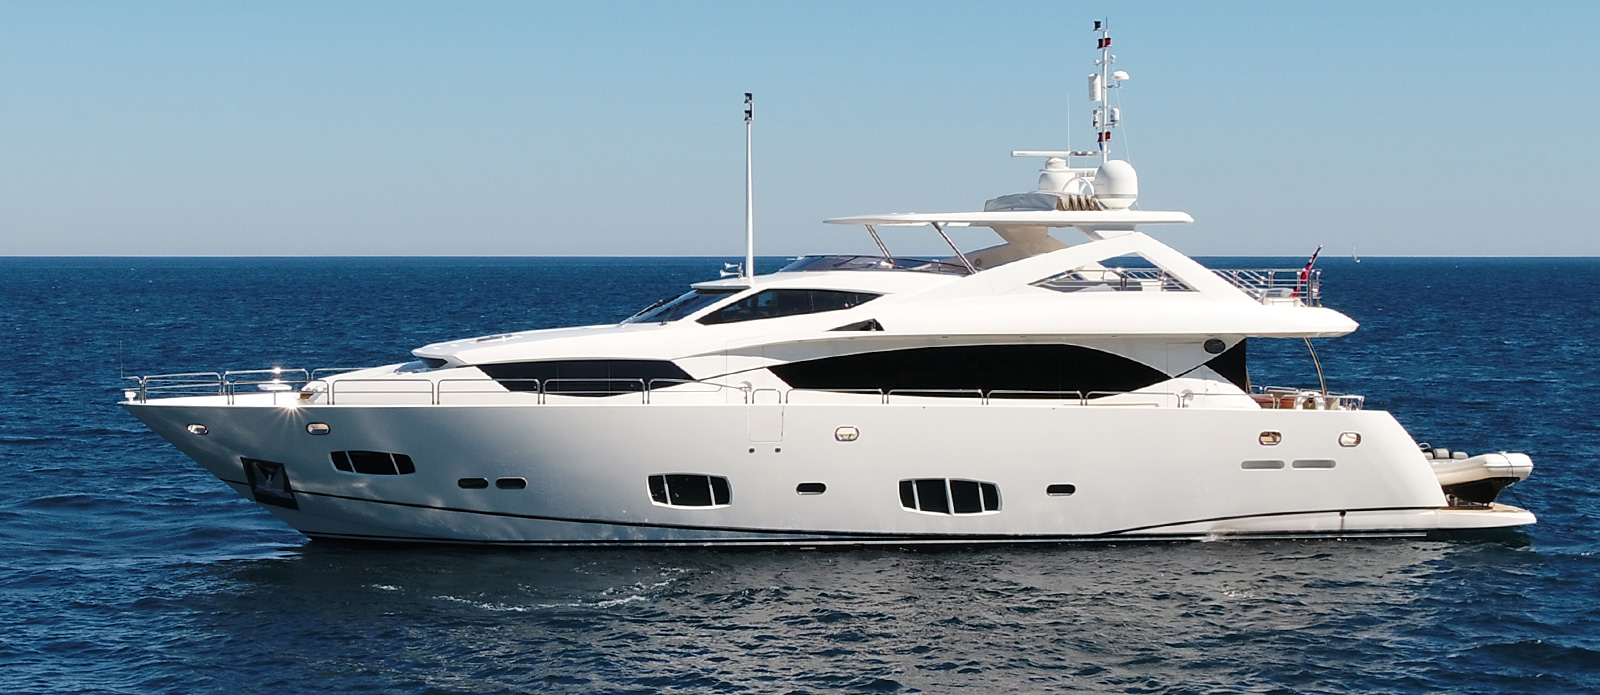 Sunseeker-30-Metre-Yacht-Tuppence---Side-Profile